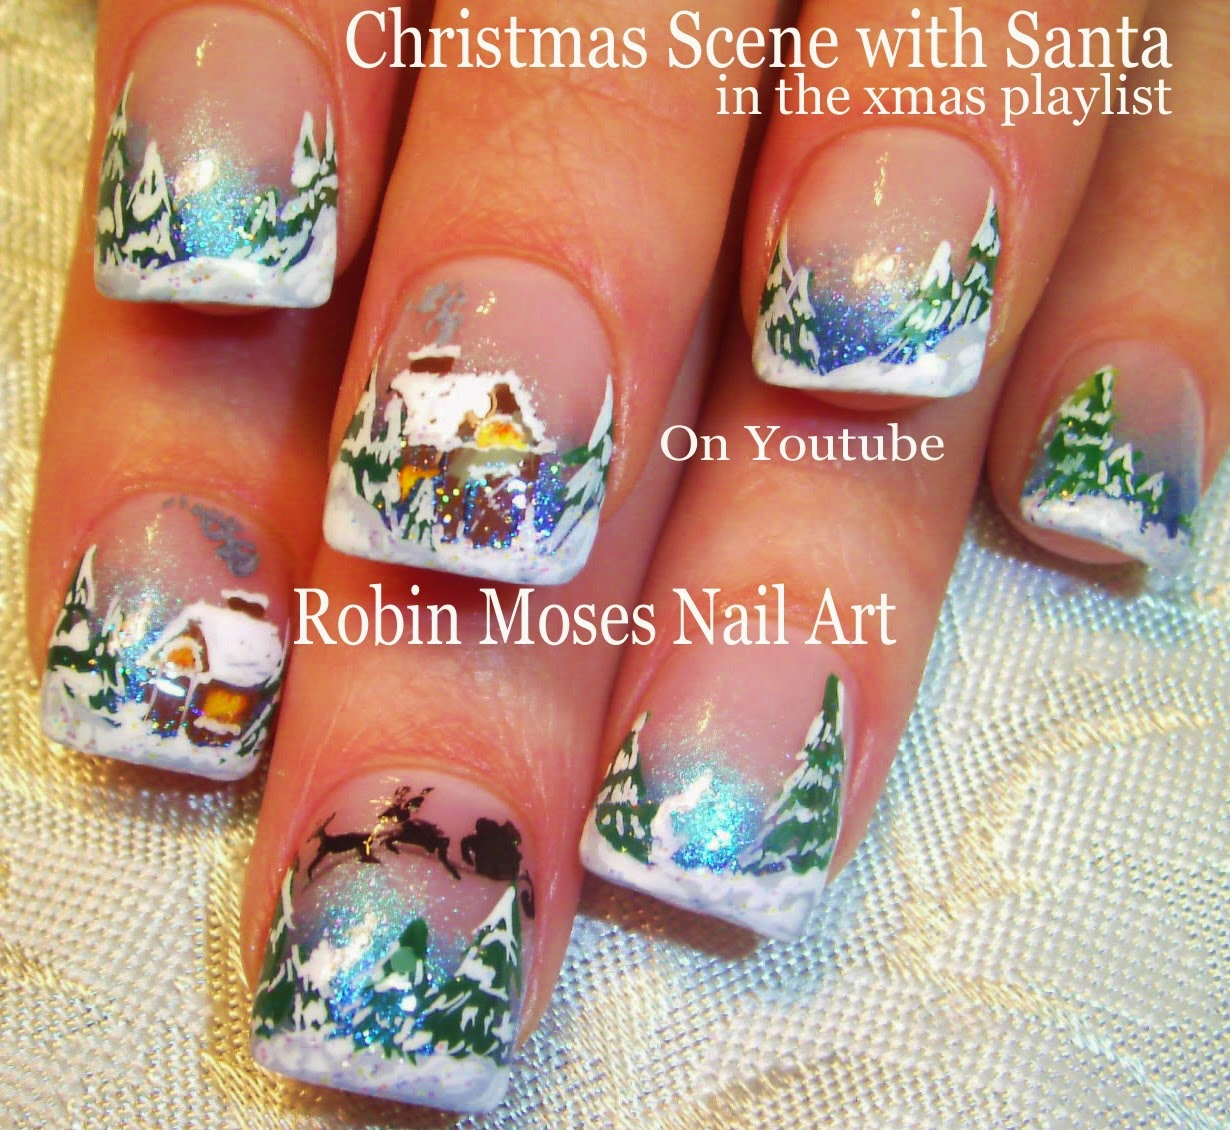 xmas nails christmas nails winter wonderland thomas kinkade nails winter scene christmas scene christmas ideas christmas clip art blue - Blue Christmas Nails